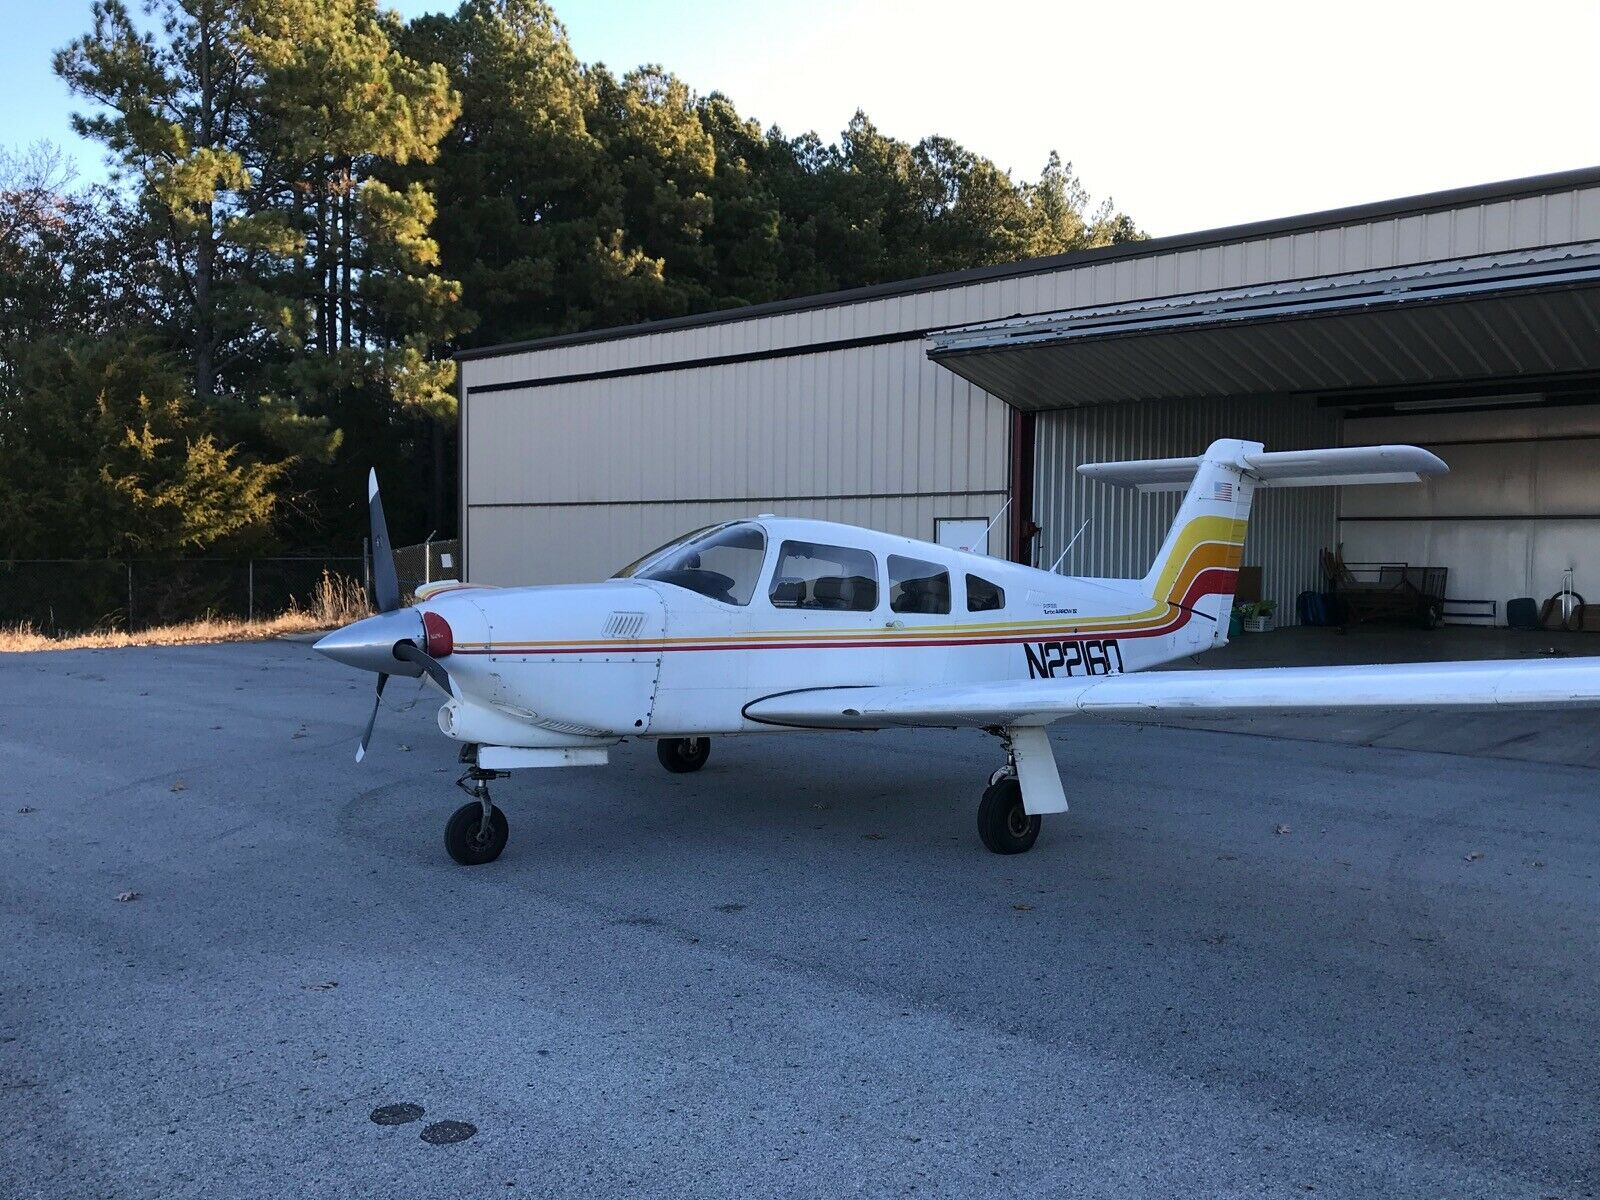 hangared and well maintained 1979 Piper Turbo Arrow aircraft